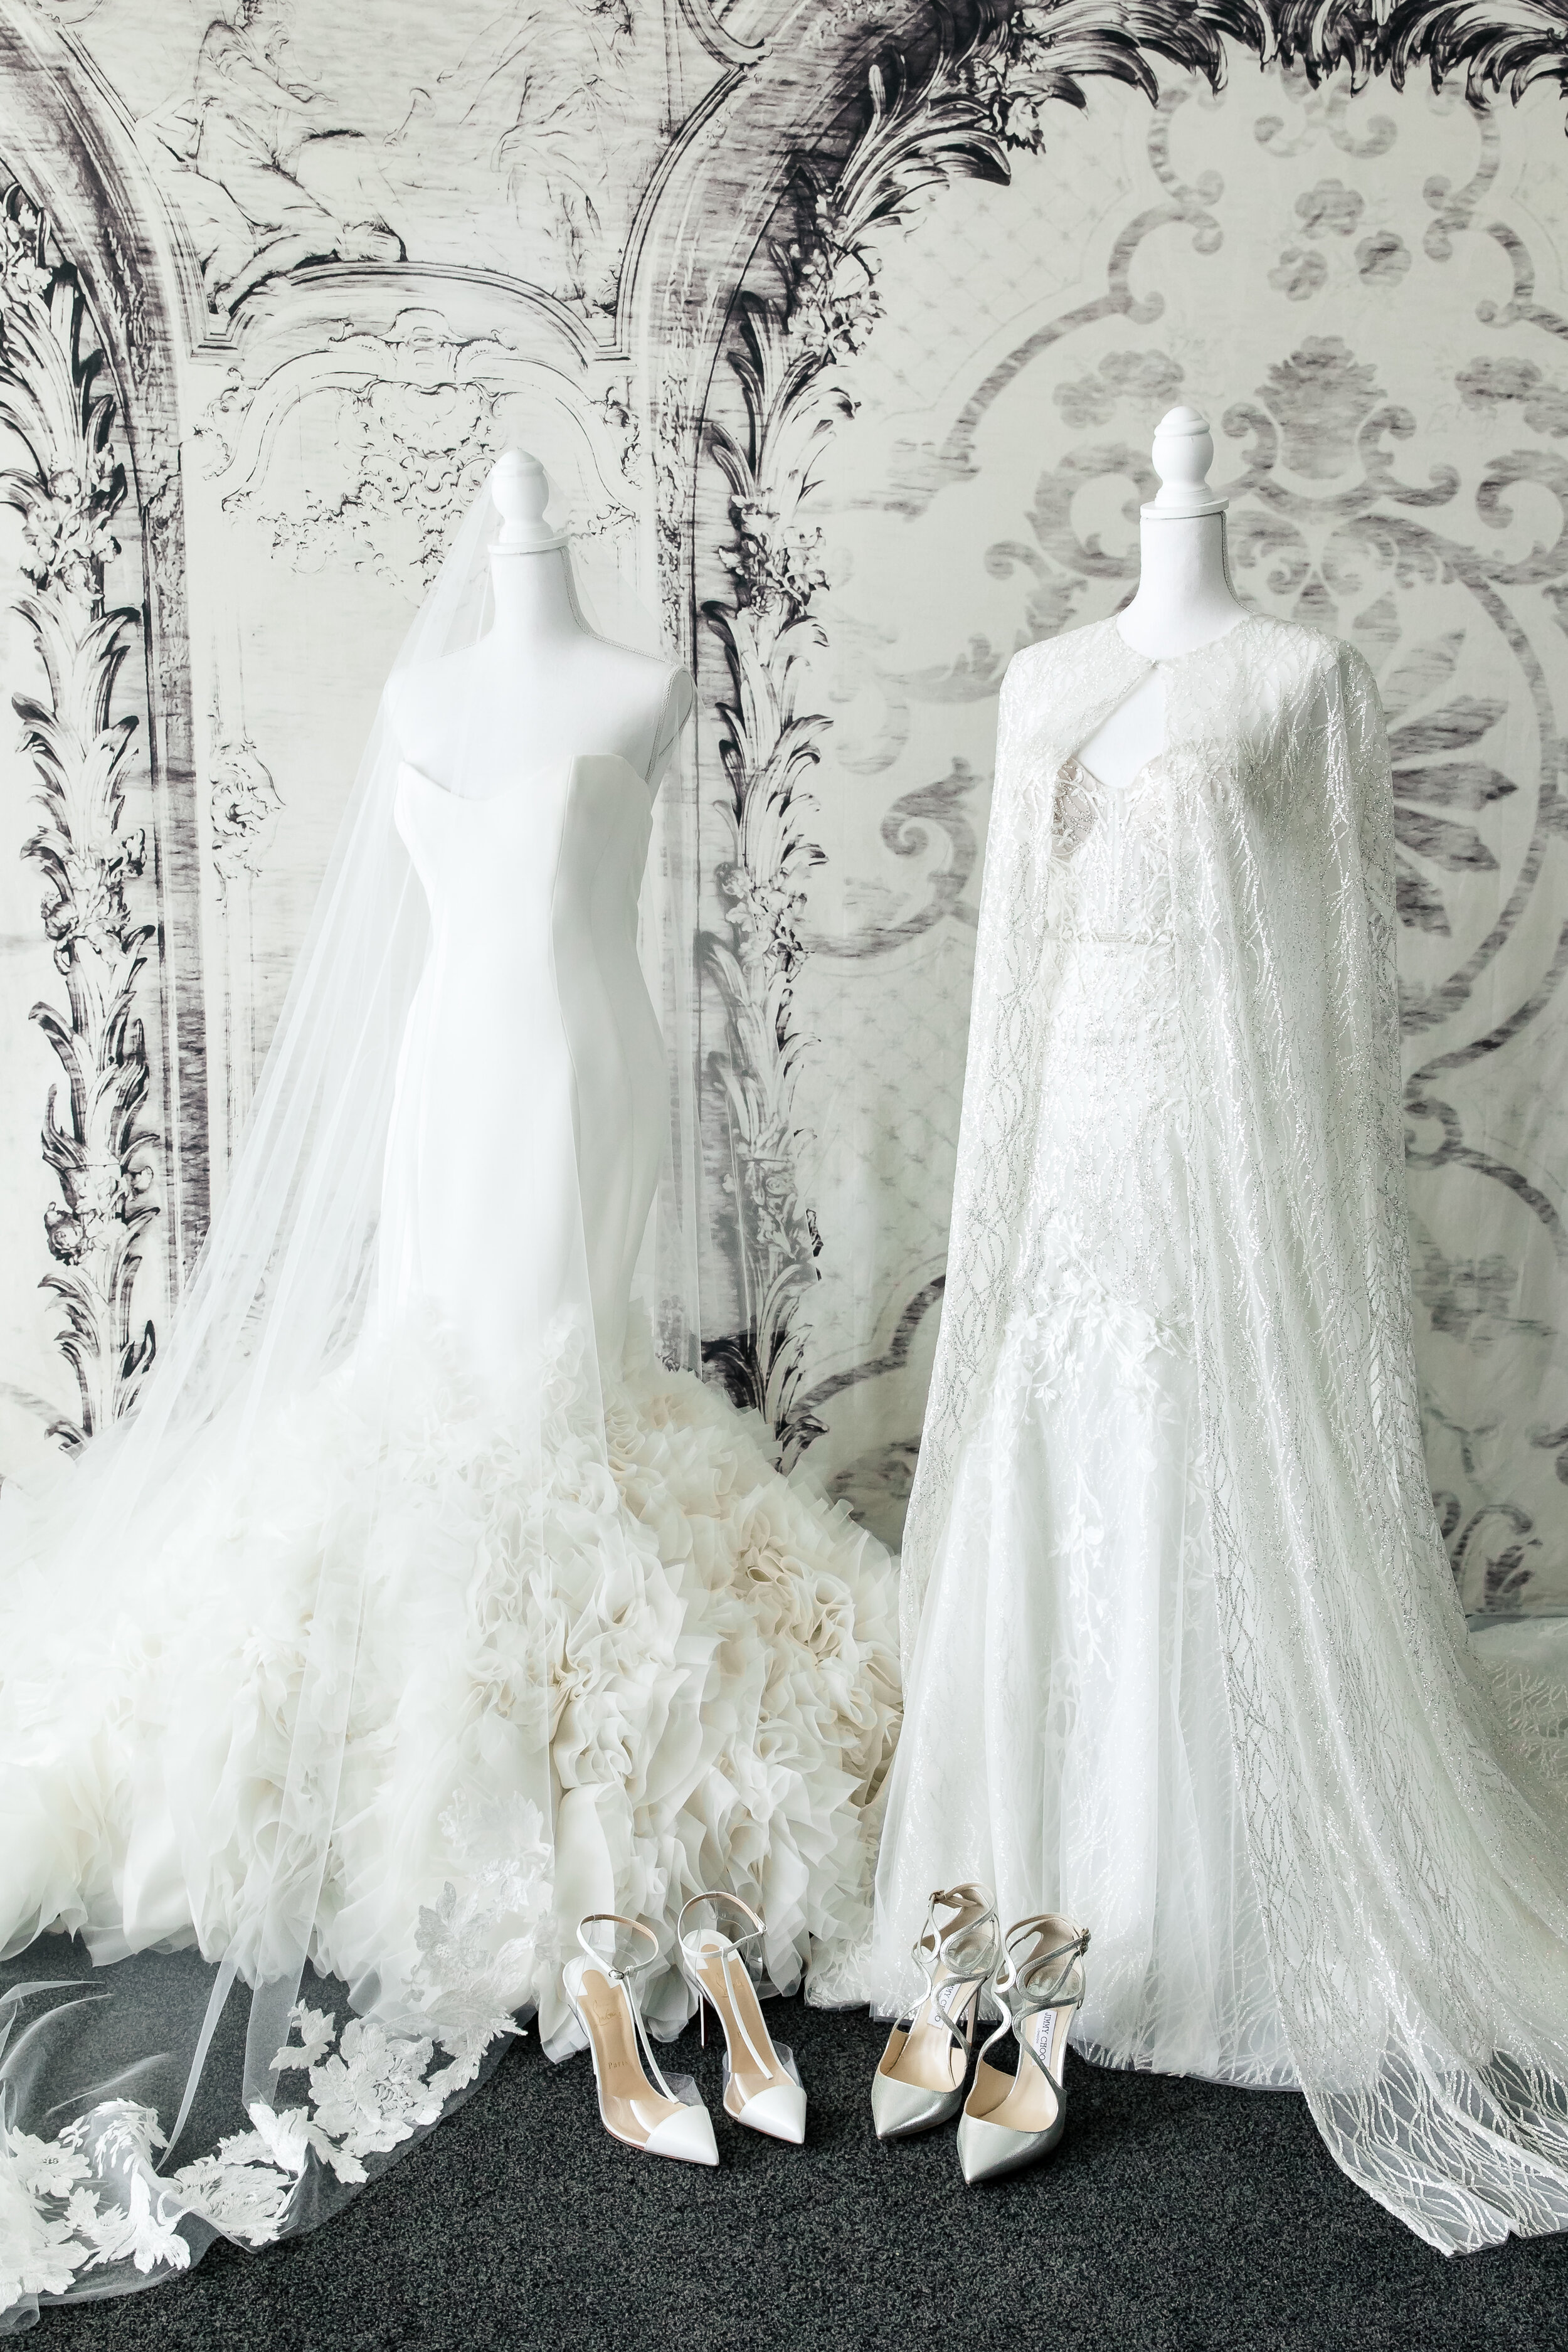 Wedding Dresses by Ines and Berta. Las Vegas Wedding Planner www.andreaeppolitoevents.com. Photo by Brian Leahy.